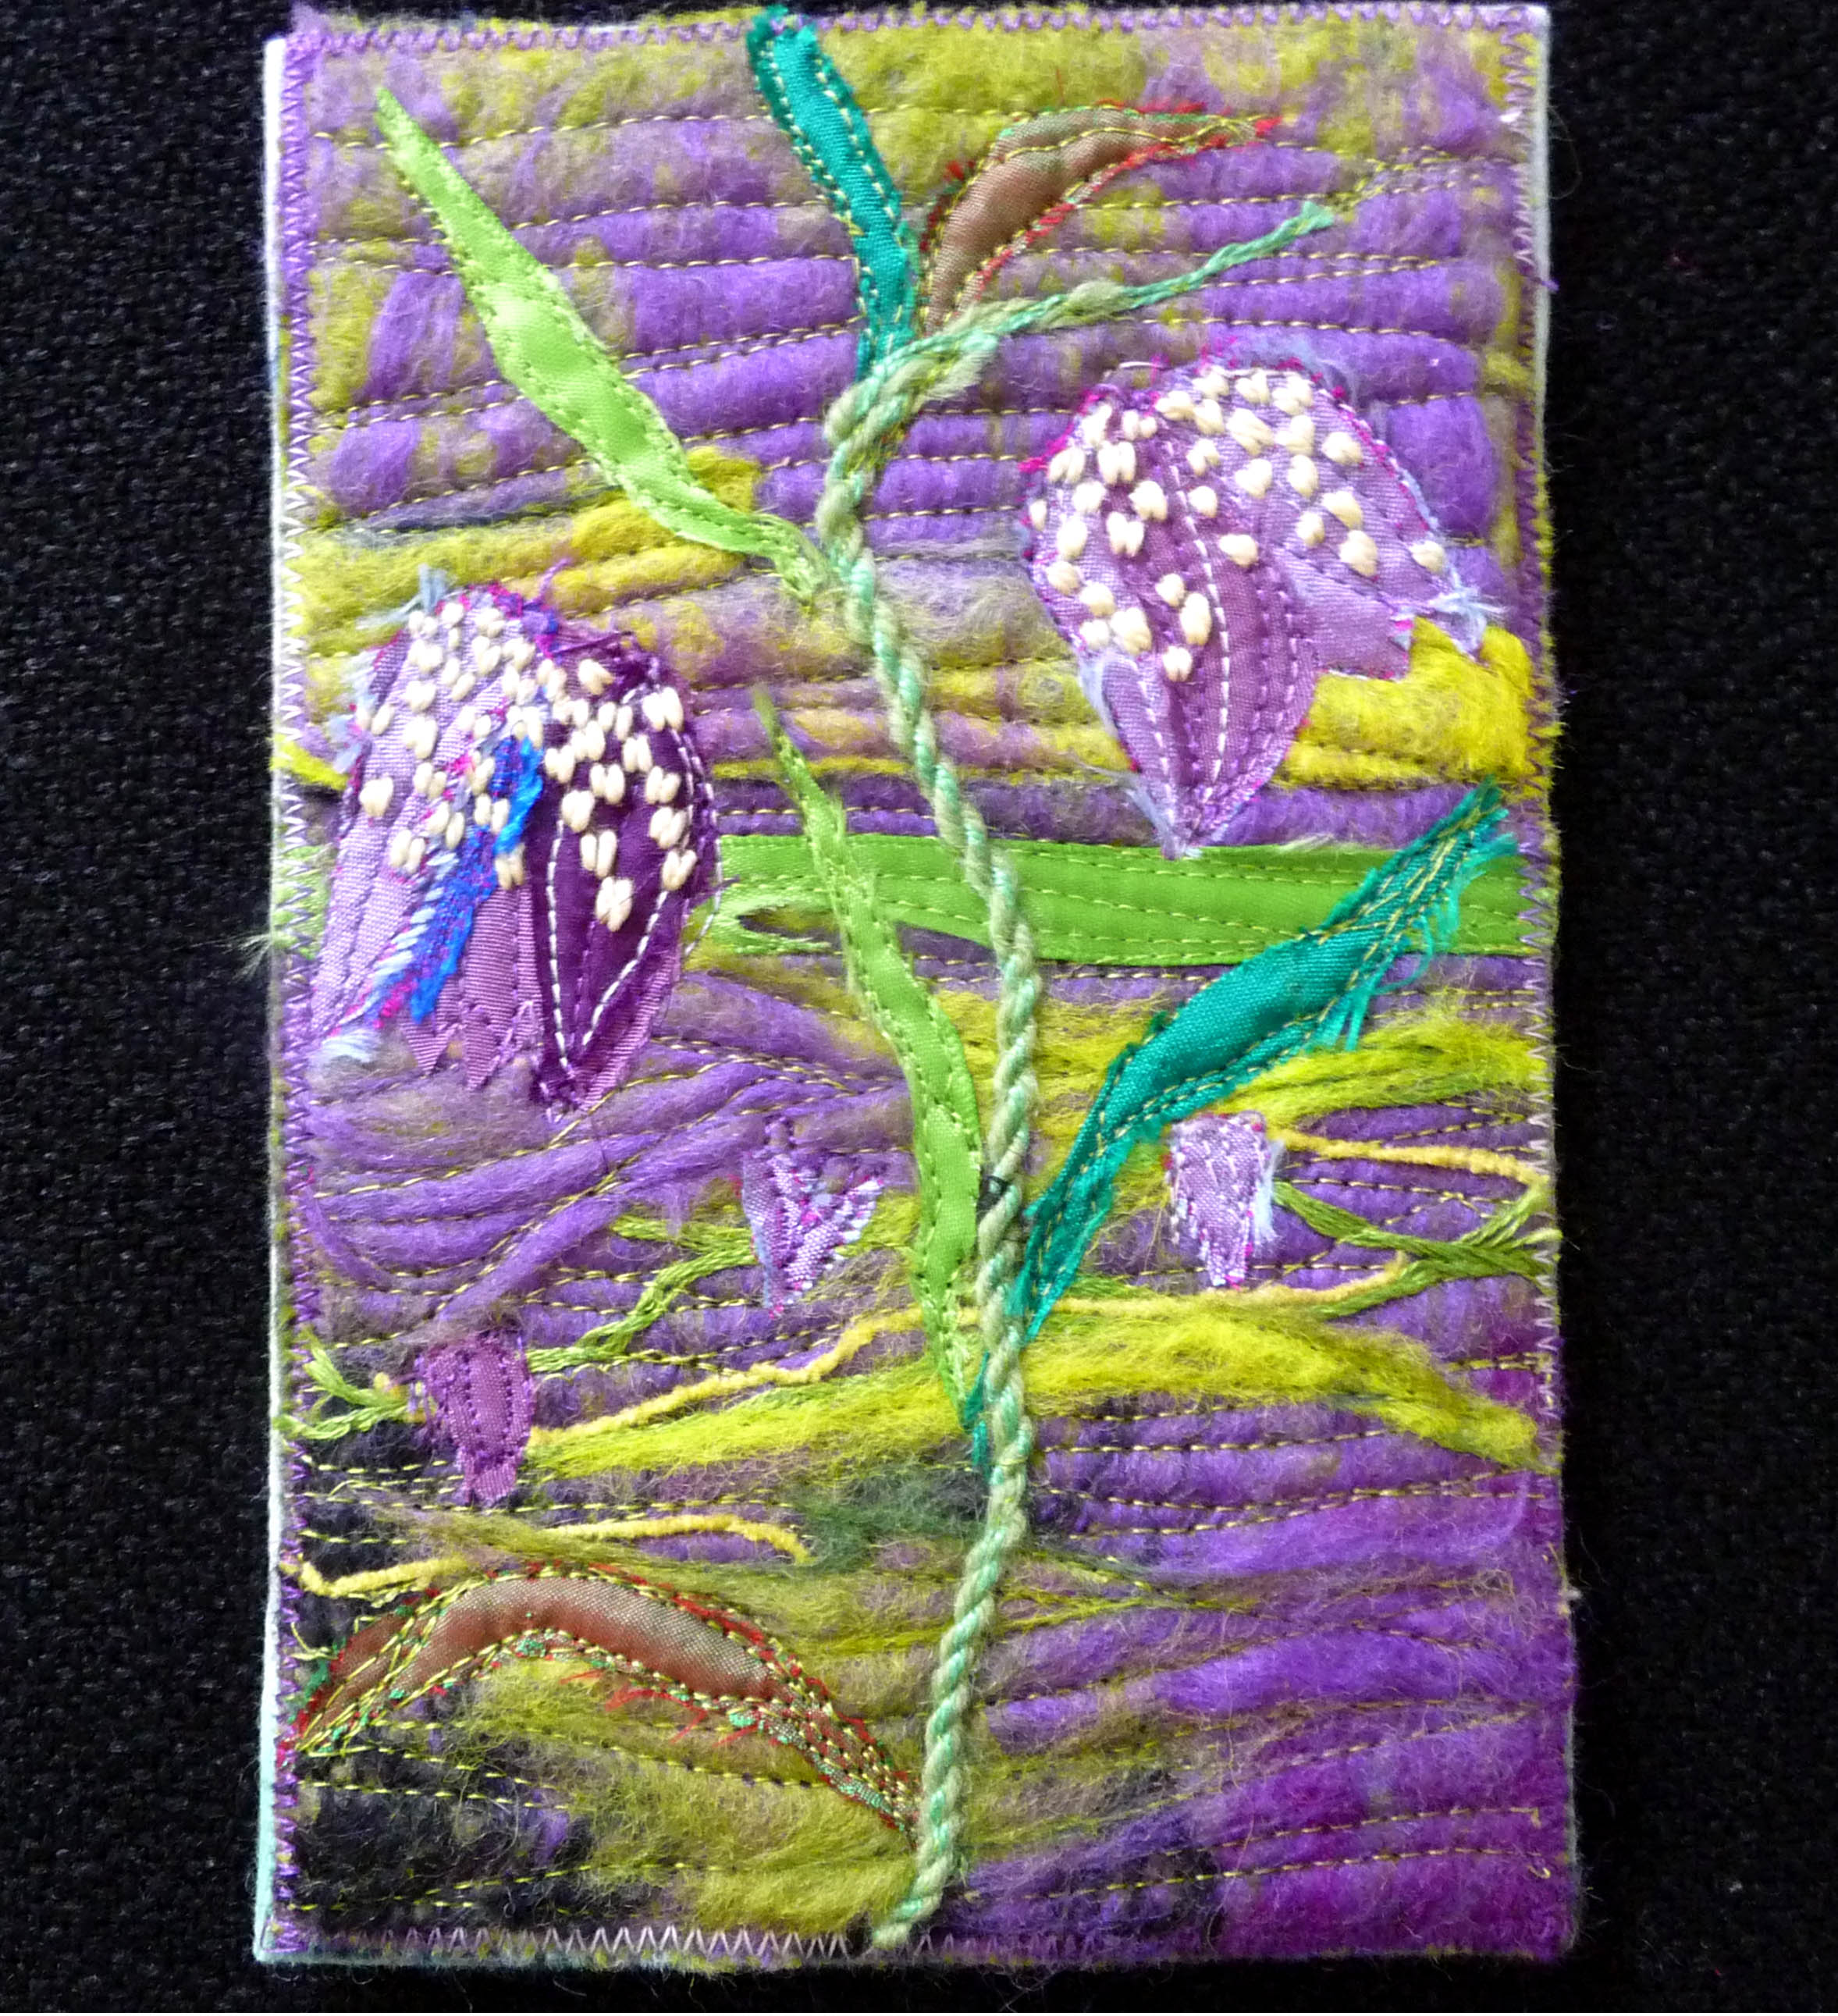 GROWTH postcard by Norma Heron